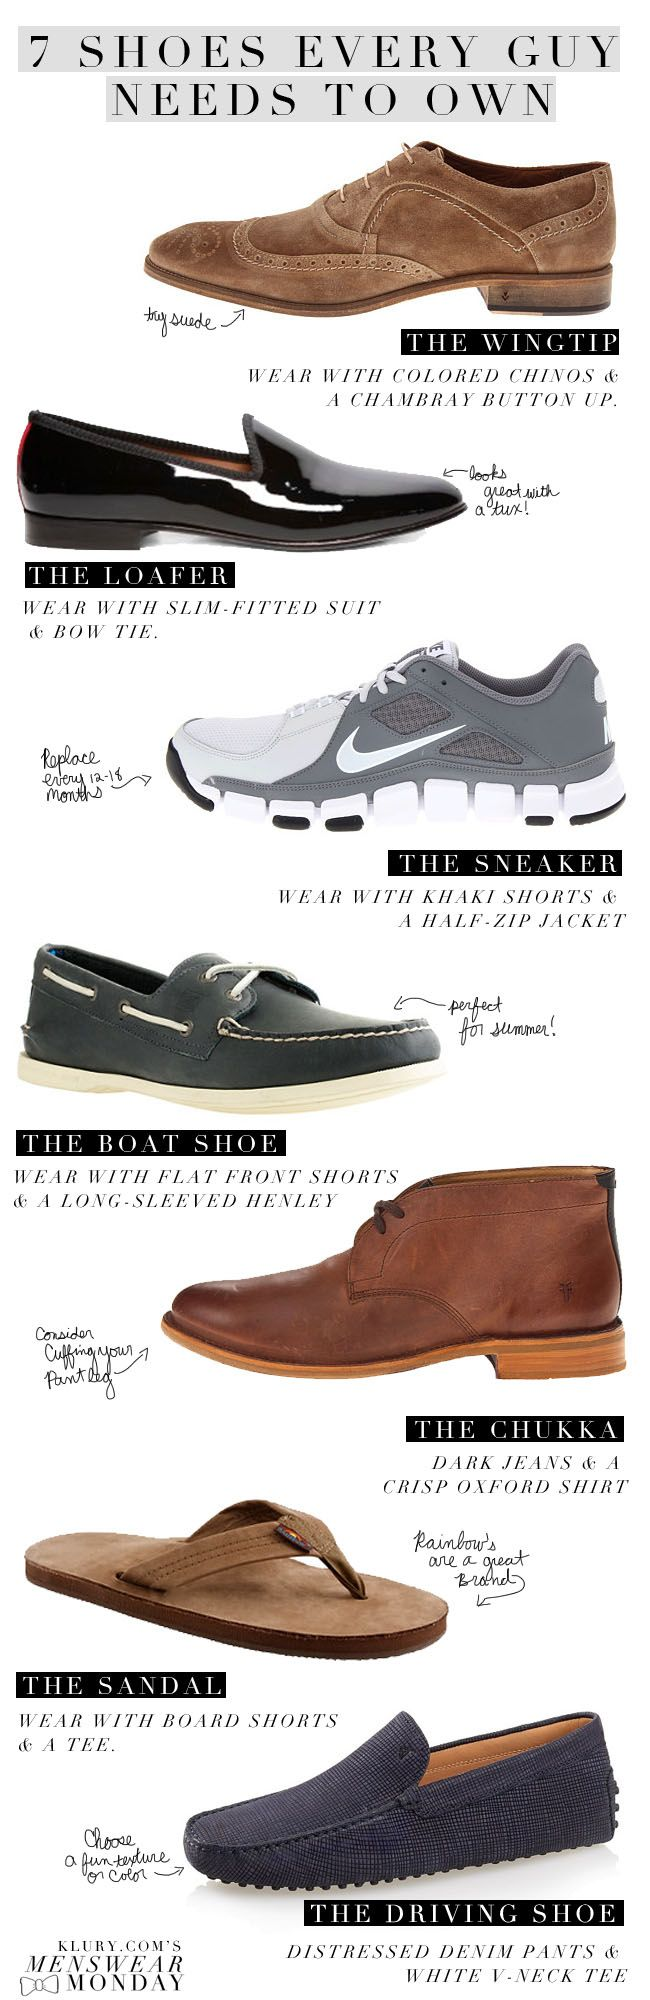 Menswear Monday 7 Shoes Every Guy Needs